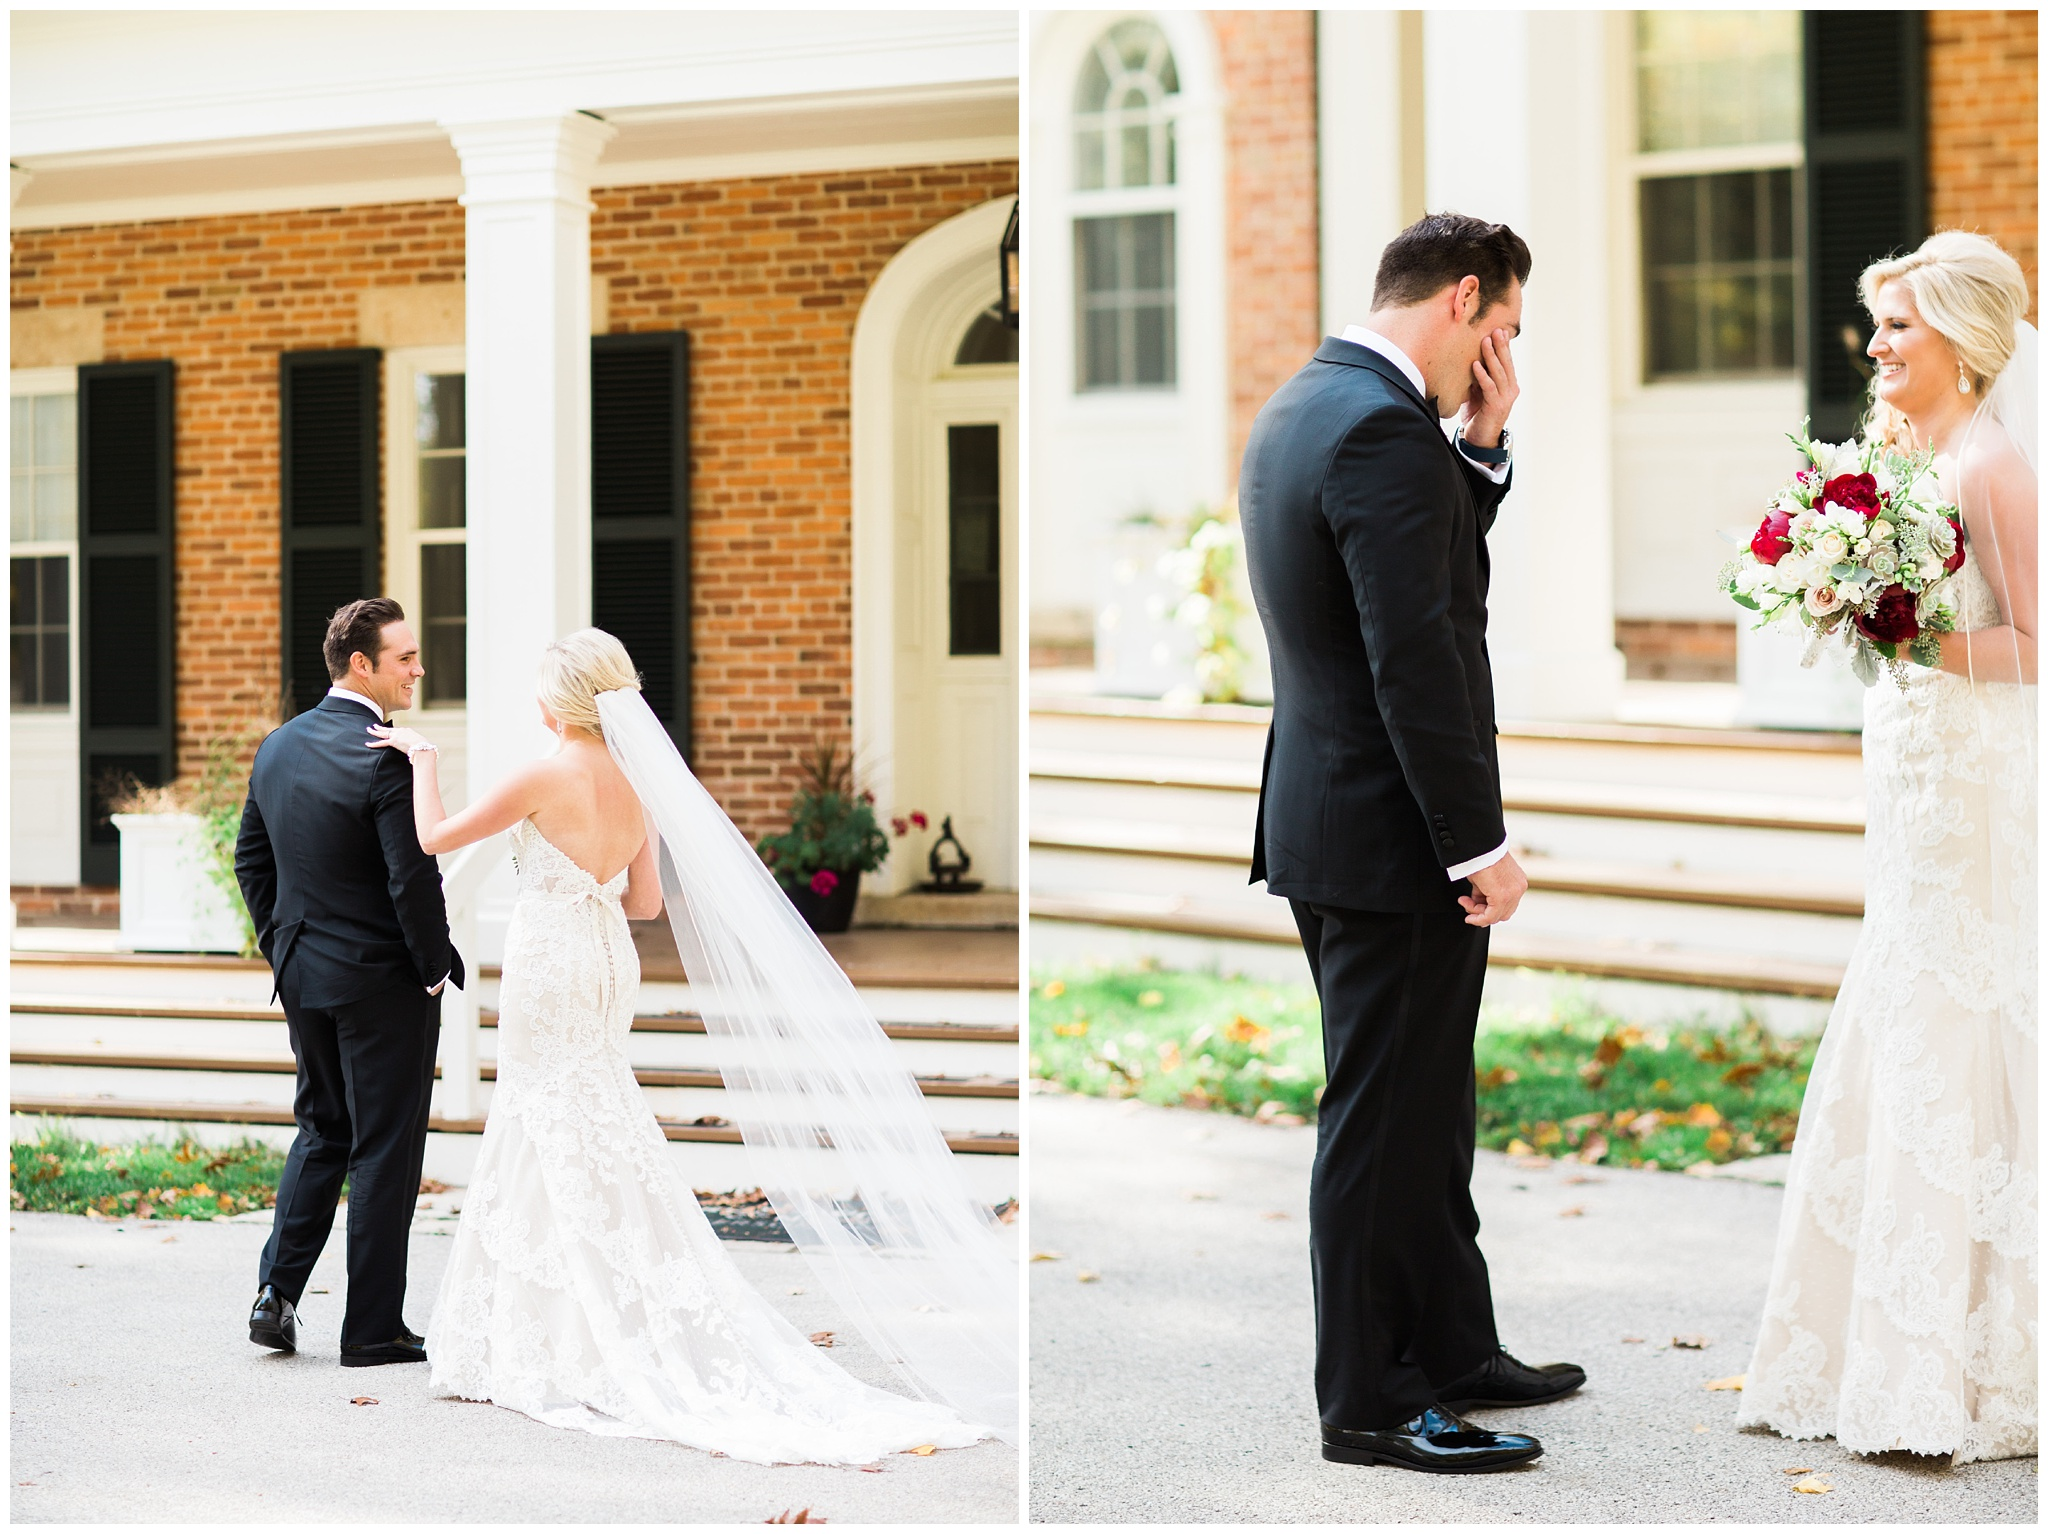 RebeccaHaleyPhotography_BarringtonPhotographer_ChicagoPhotographer_ChicagoWedding_0035.jpg